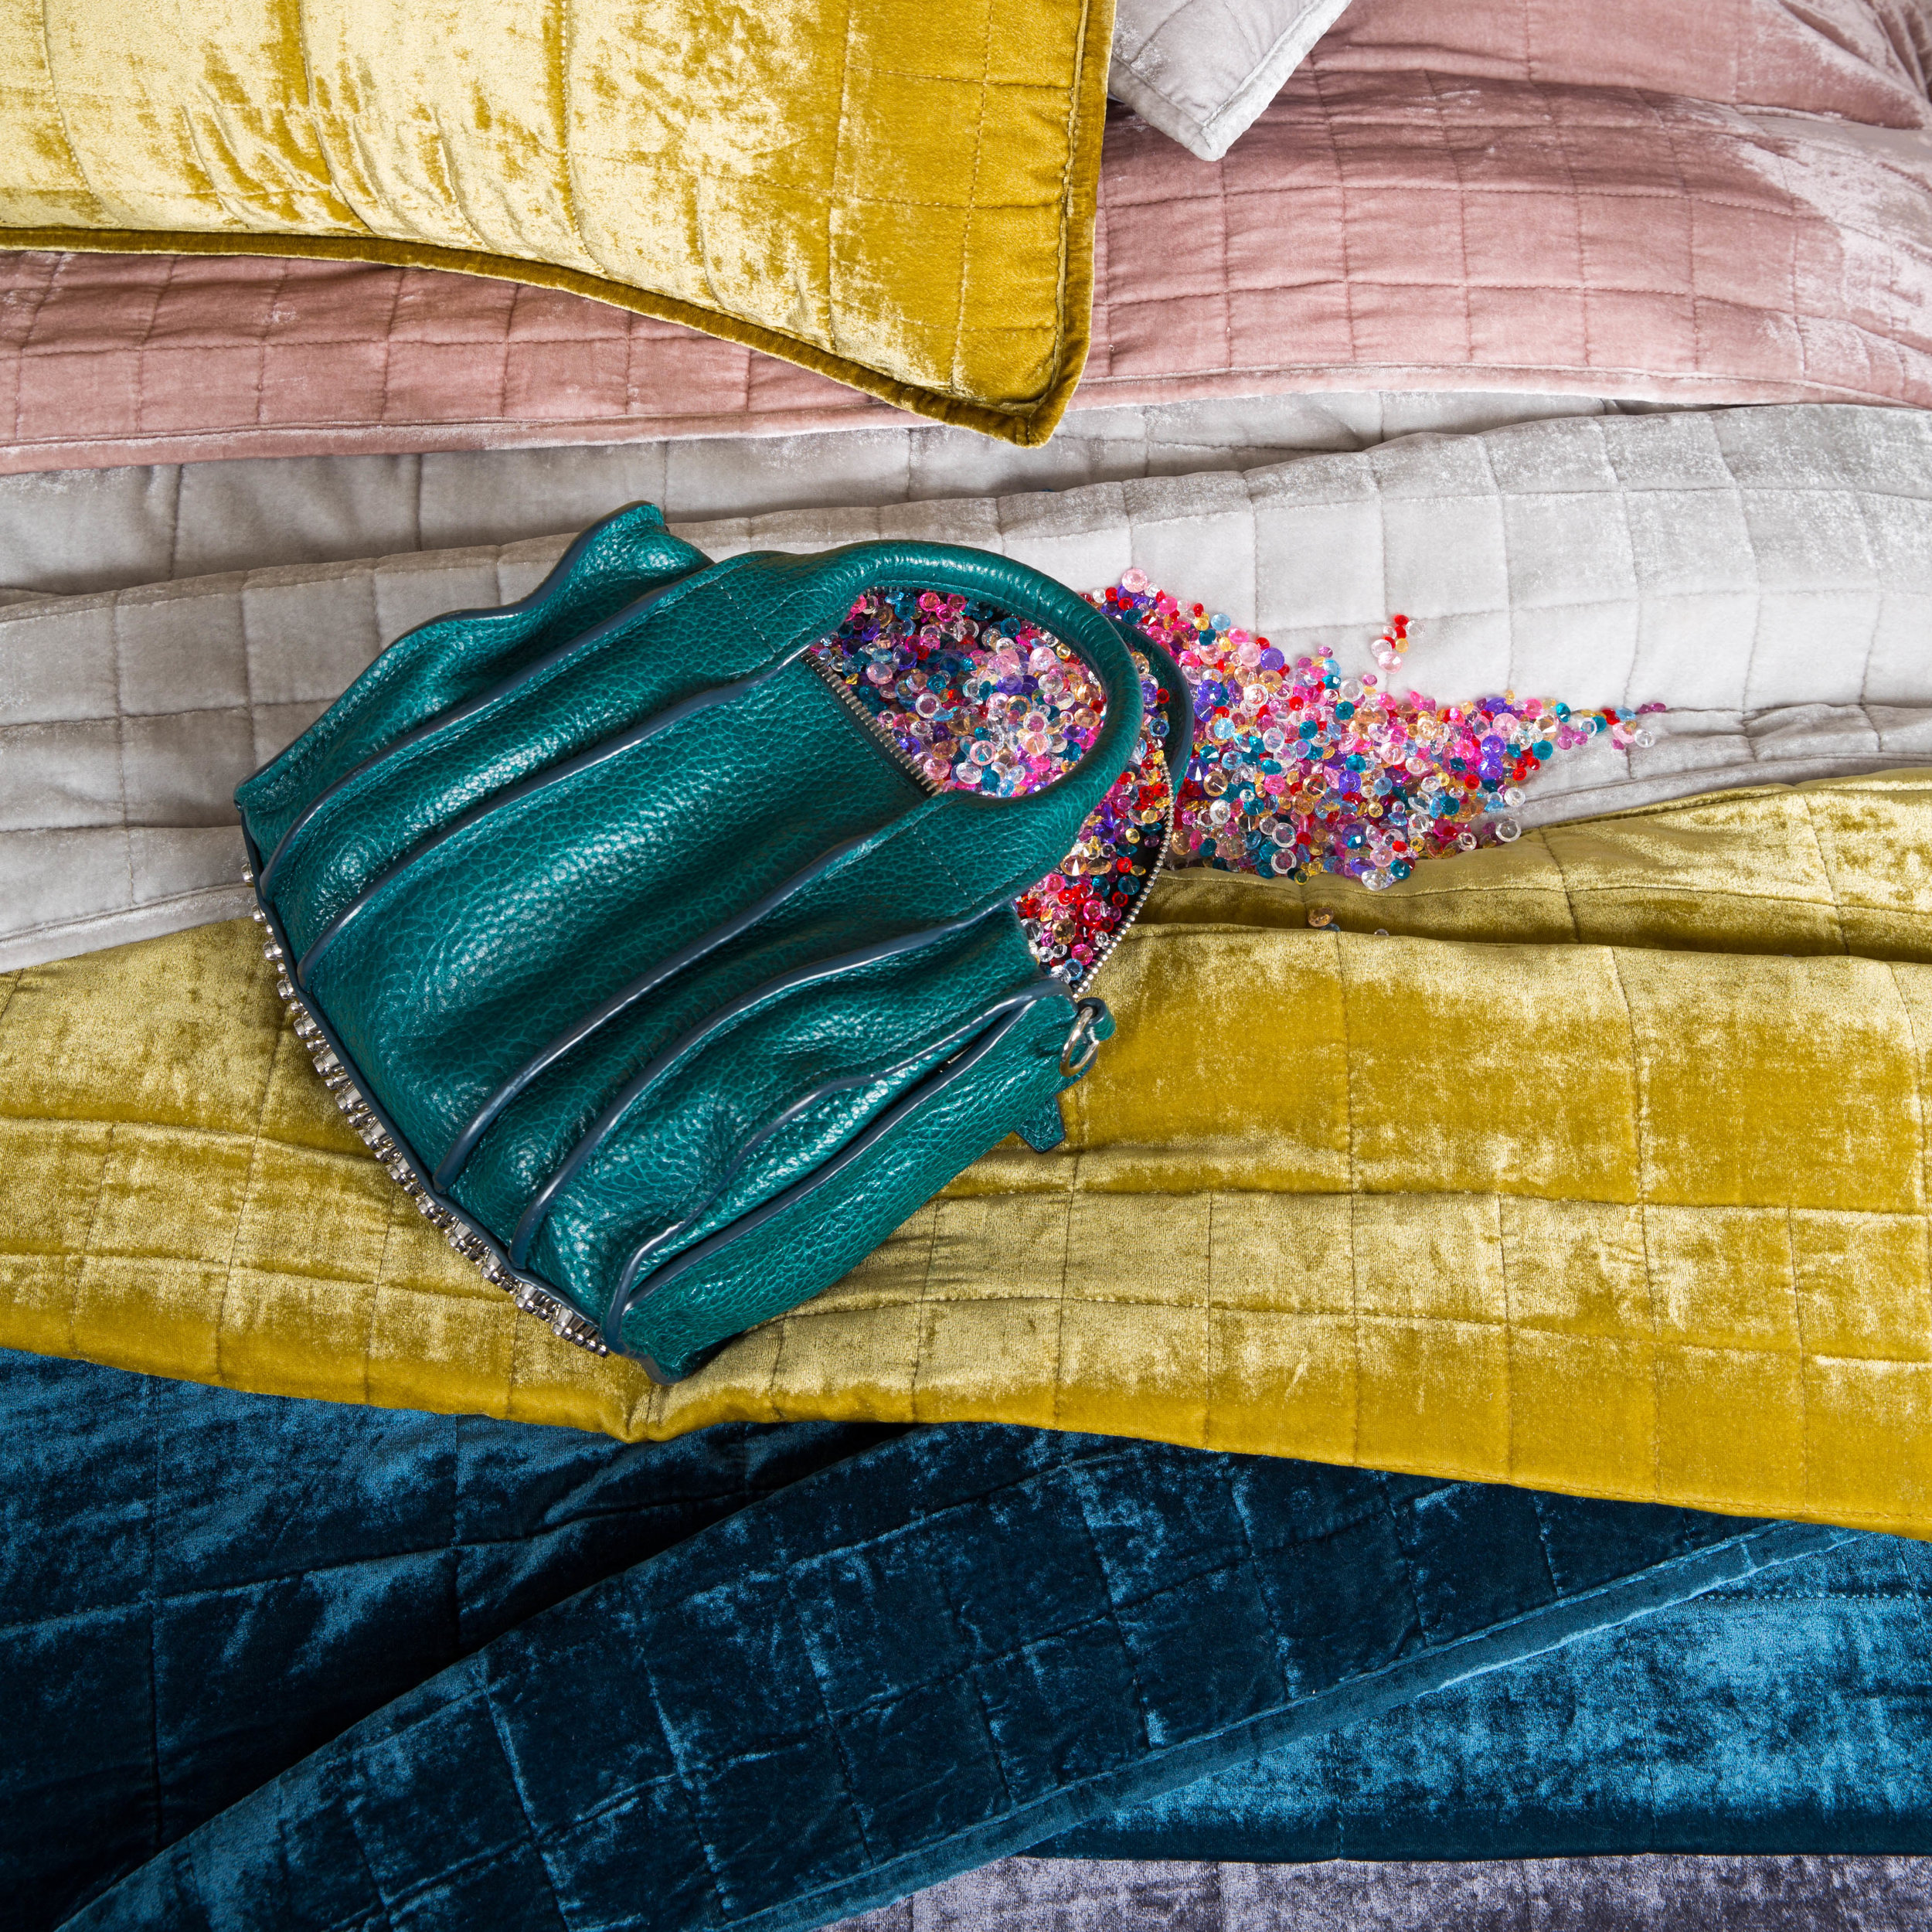 """BROOKE JACOBS  """"I loved the color of the bag and when I worked on a layered bed of rich velvety jewel toned blankets.I thought it would be perfect for the bag and I would go all out on the jewel concept. """""""